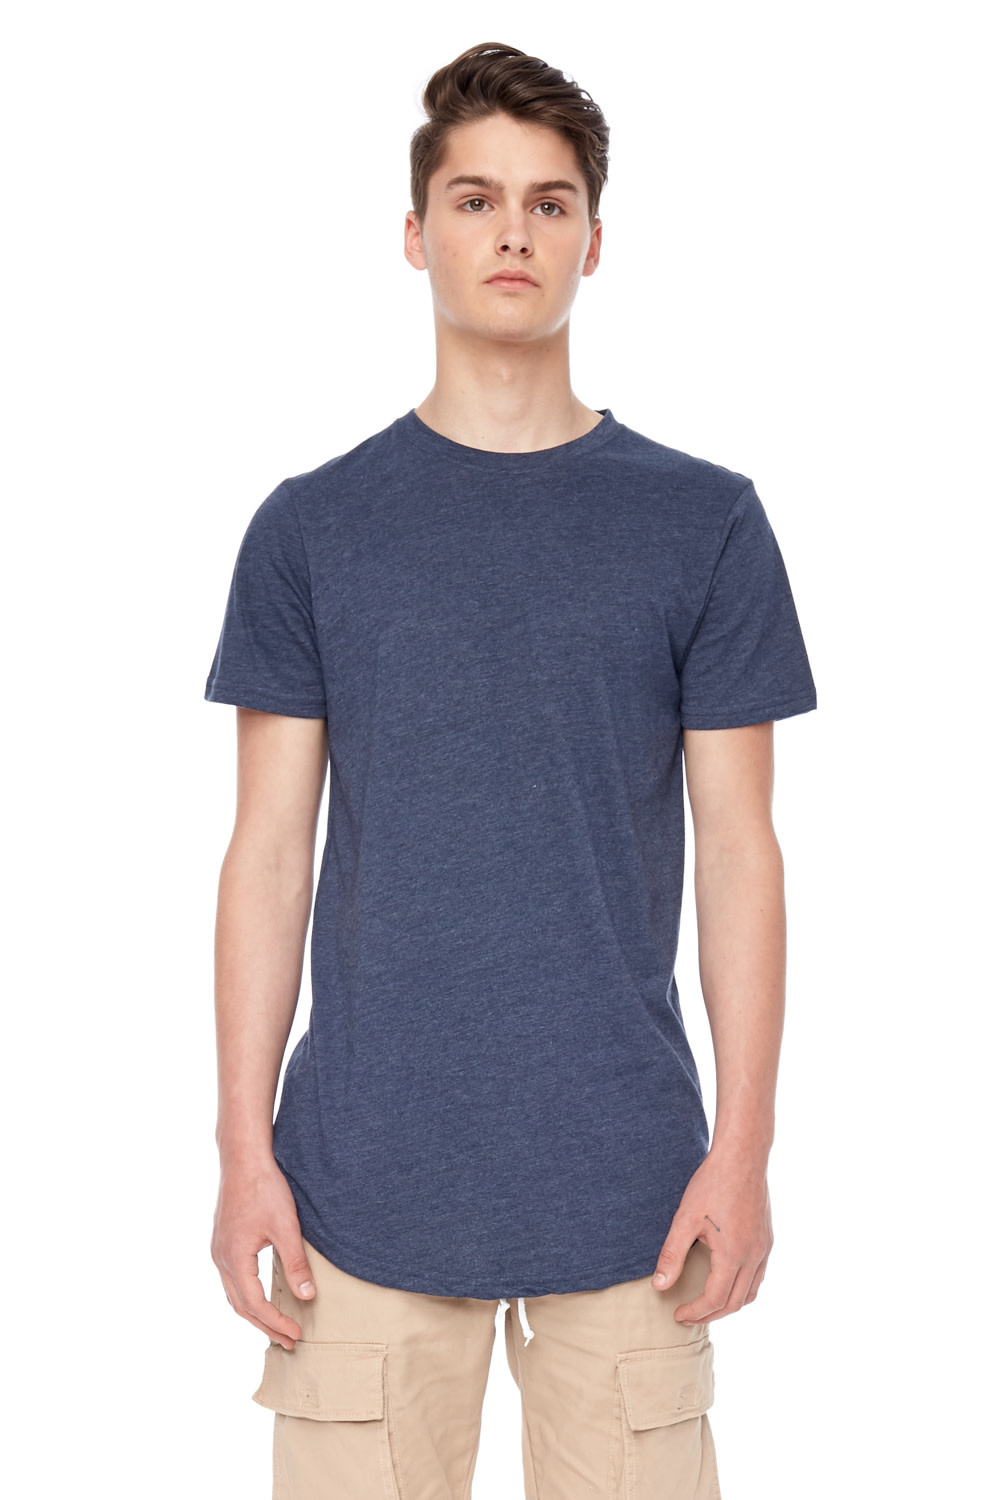 Eazy Scoop Tee Navy